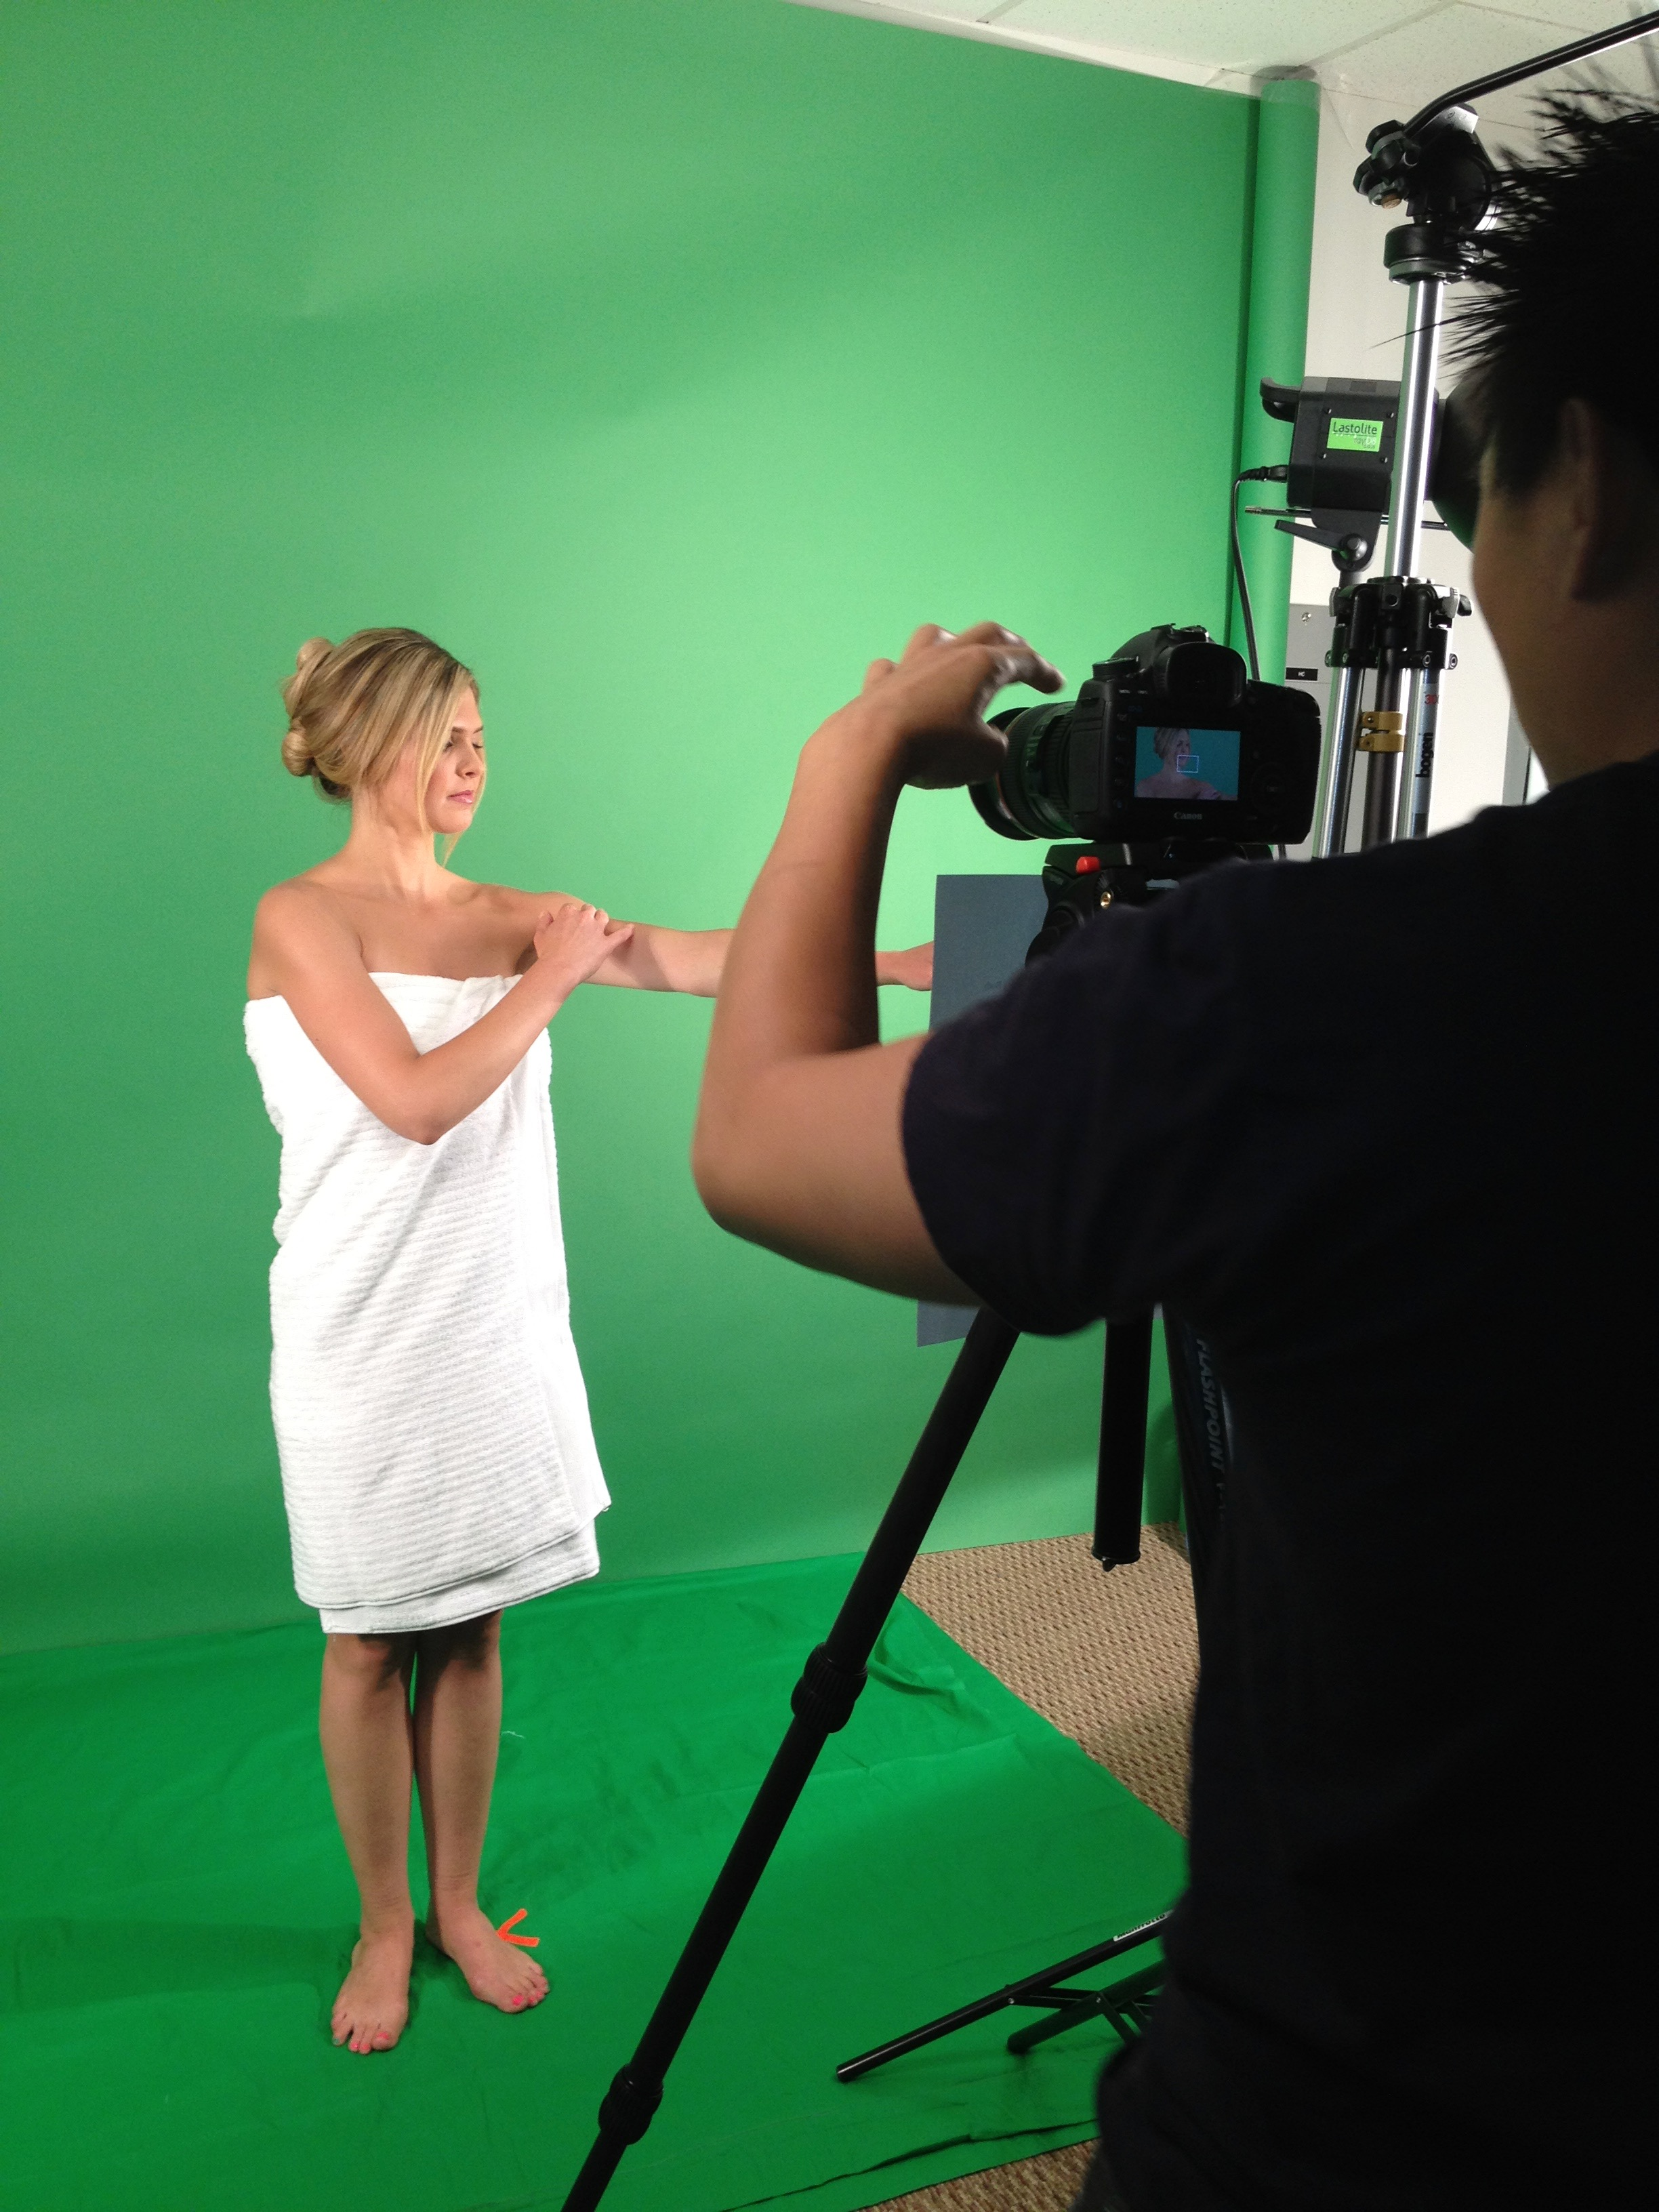 Behind the scenes of commercial shoot